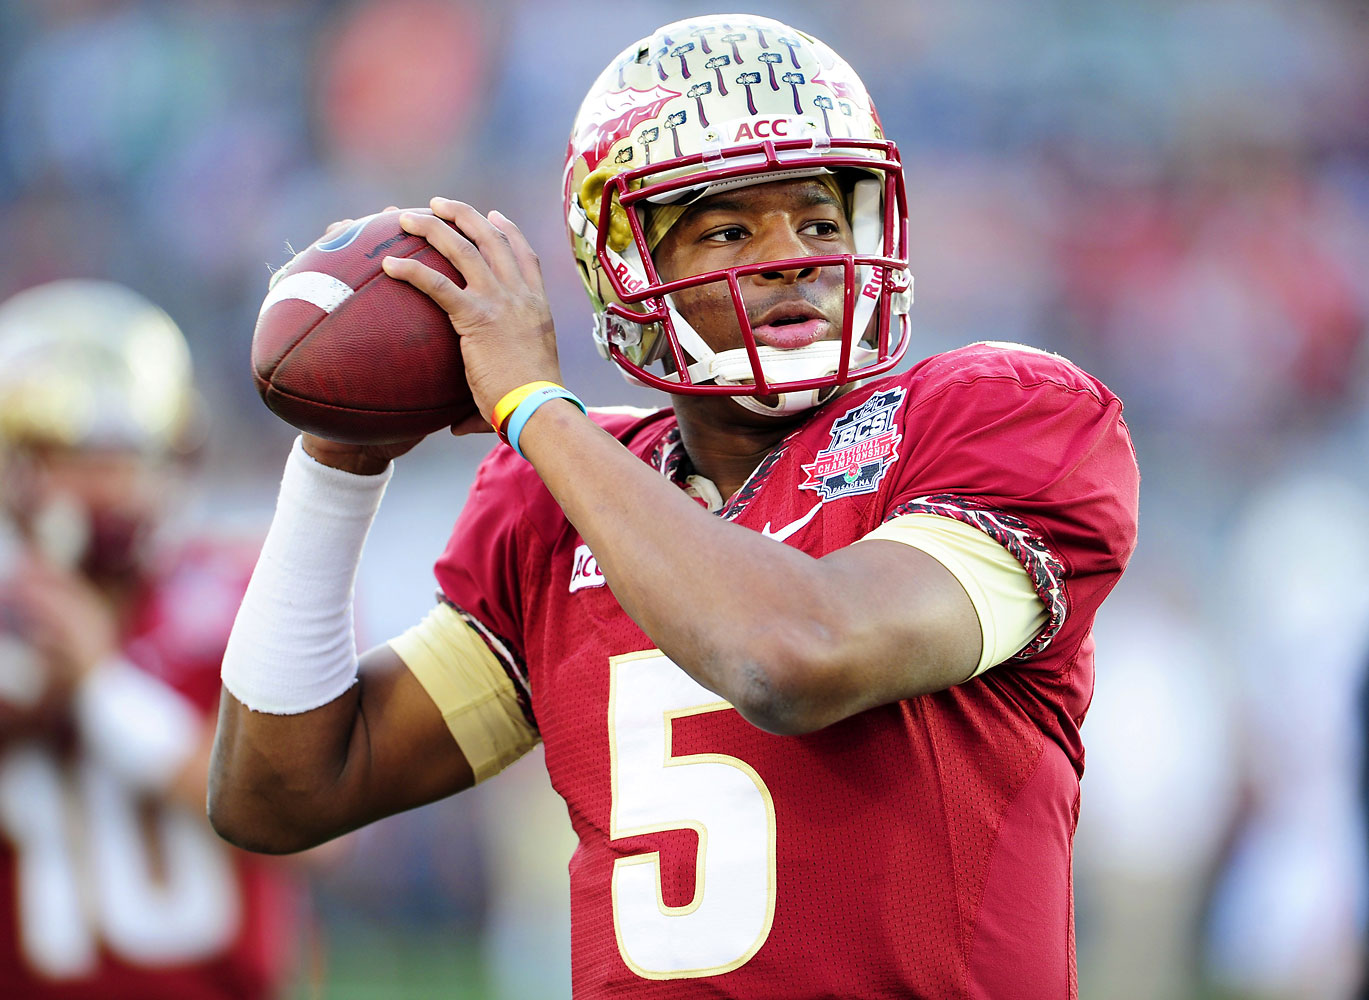 Jameis Winston of the Florida State Seminoles in action during the BCS National Championship. Florida State defeated Auburn 34-31 in the game at the Rose Bowl in Pasadena, Calif., Jan. 6 2014.